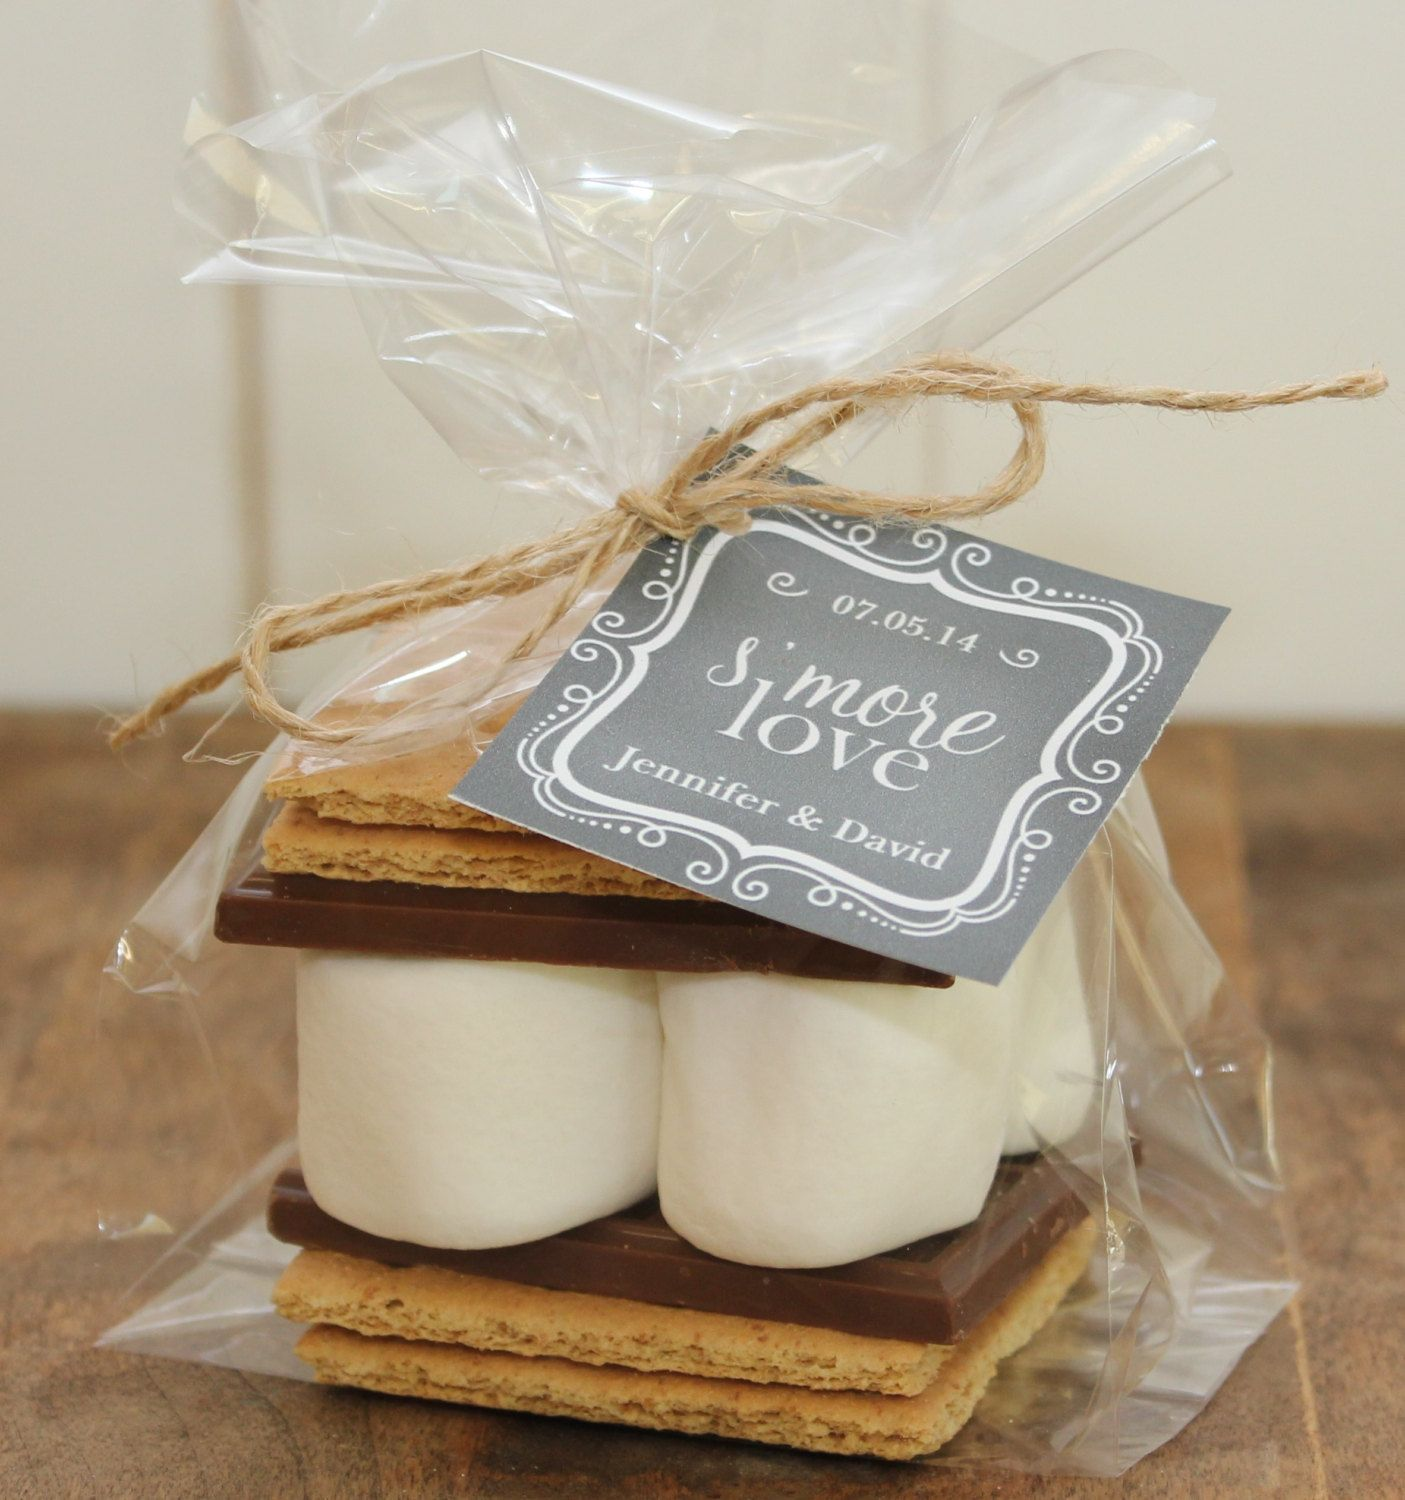 24 S Mores Wedding Favor Kits Any Label Design By Thefavorbox 36 00